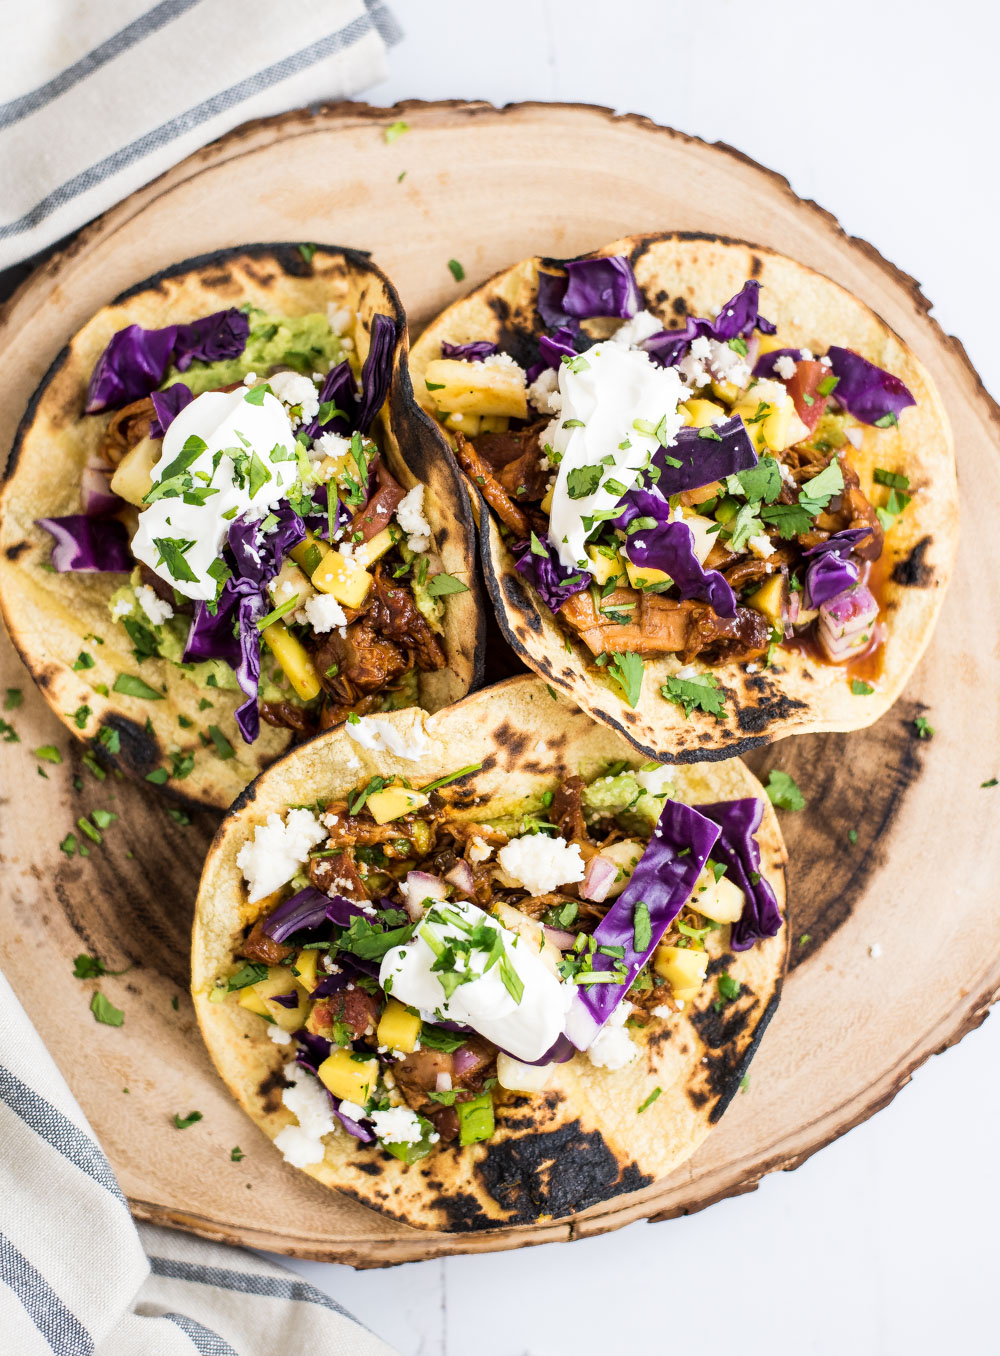 Slow cooker barbecue chicken tacos with mango and pineapple salsa are the perfect way to spruce up your Taco Tuesday. They are simple and super flavorful!